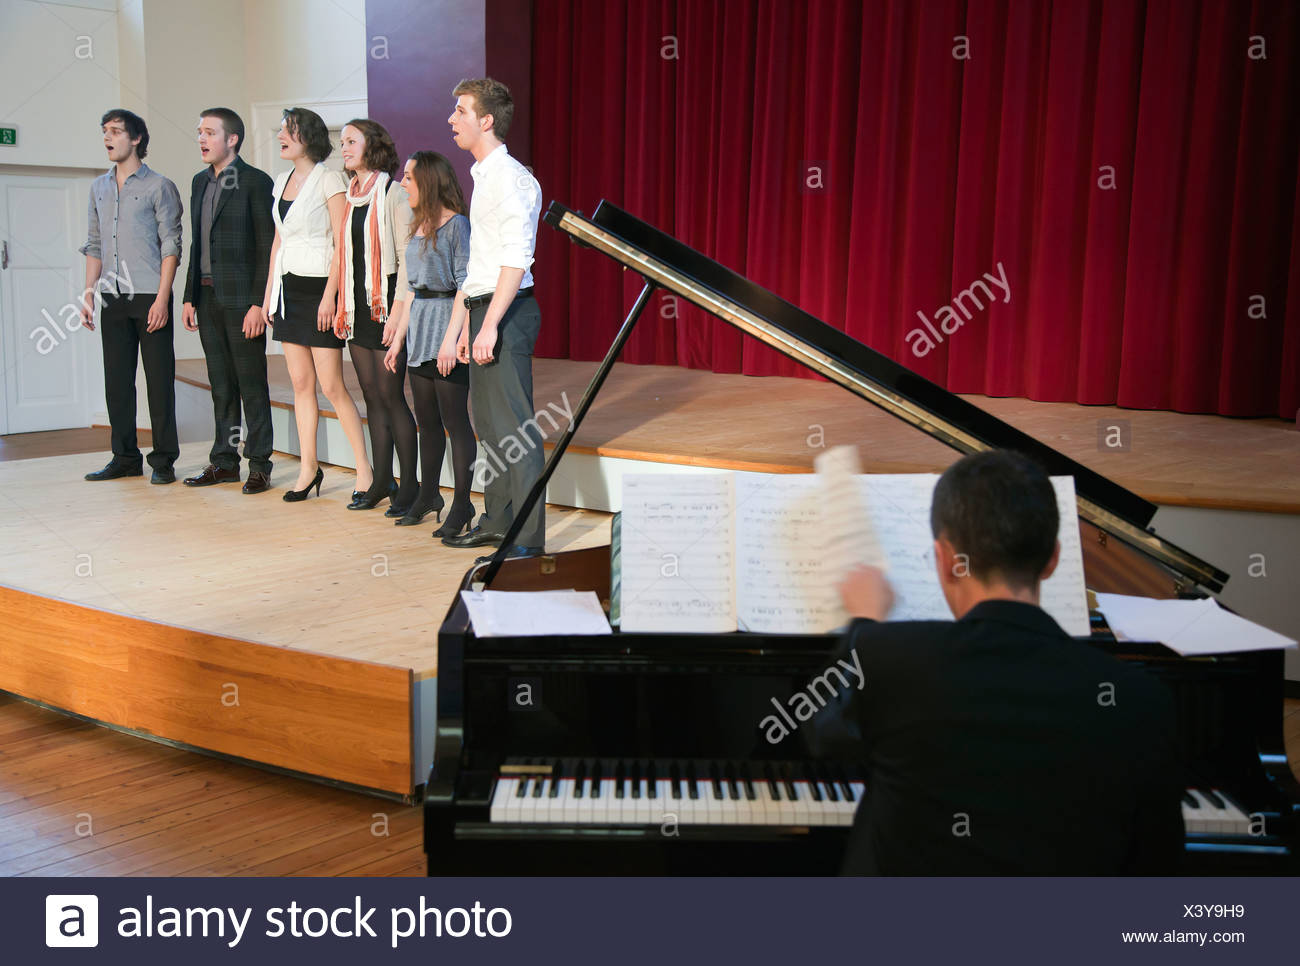 Essen, Germany, the change concerts in Hochschulchoere Fuhr - Stock Image